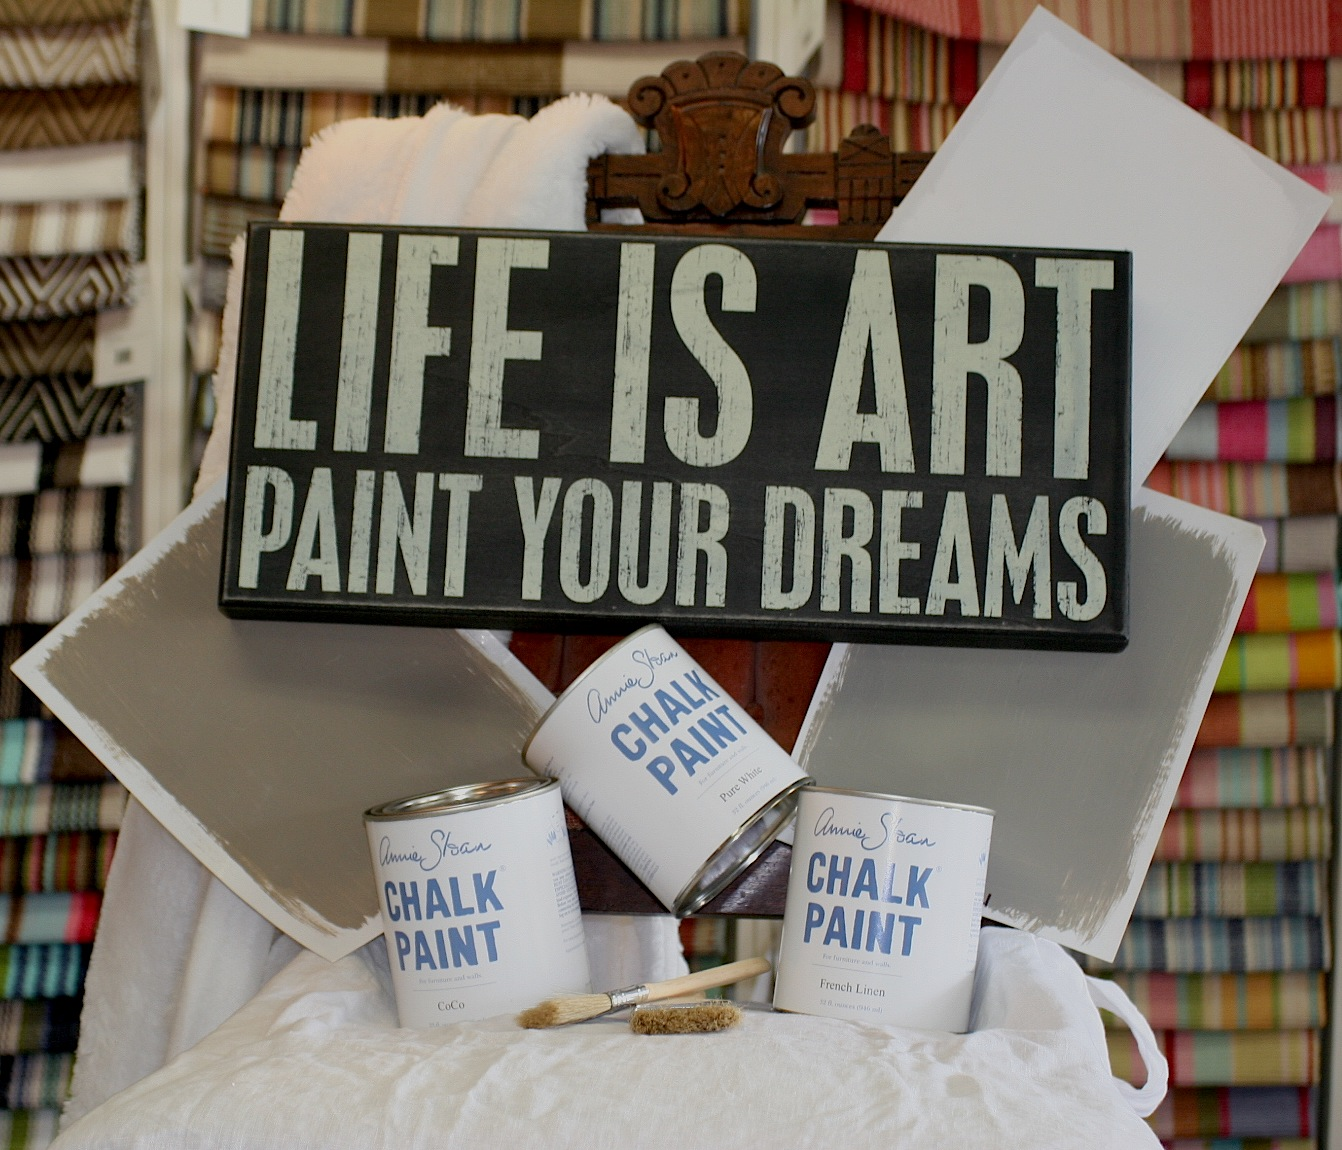 Life is art paint...